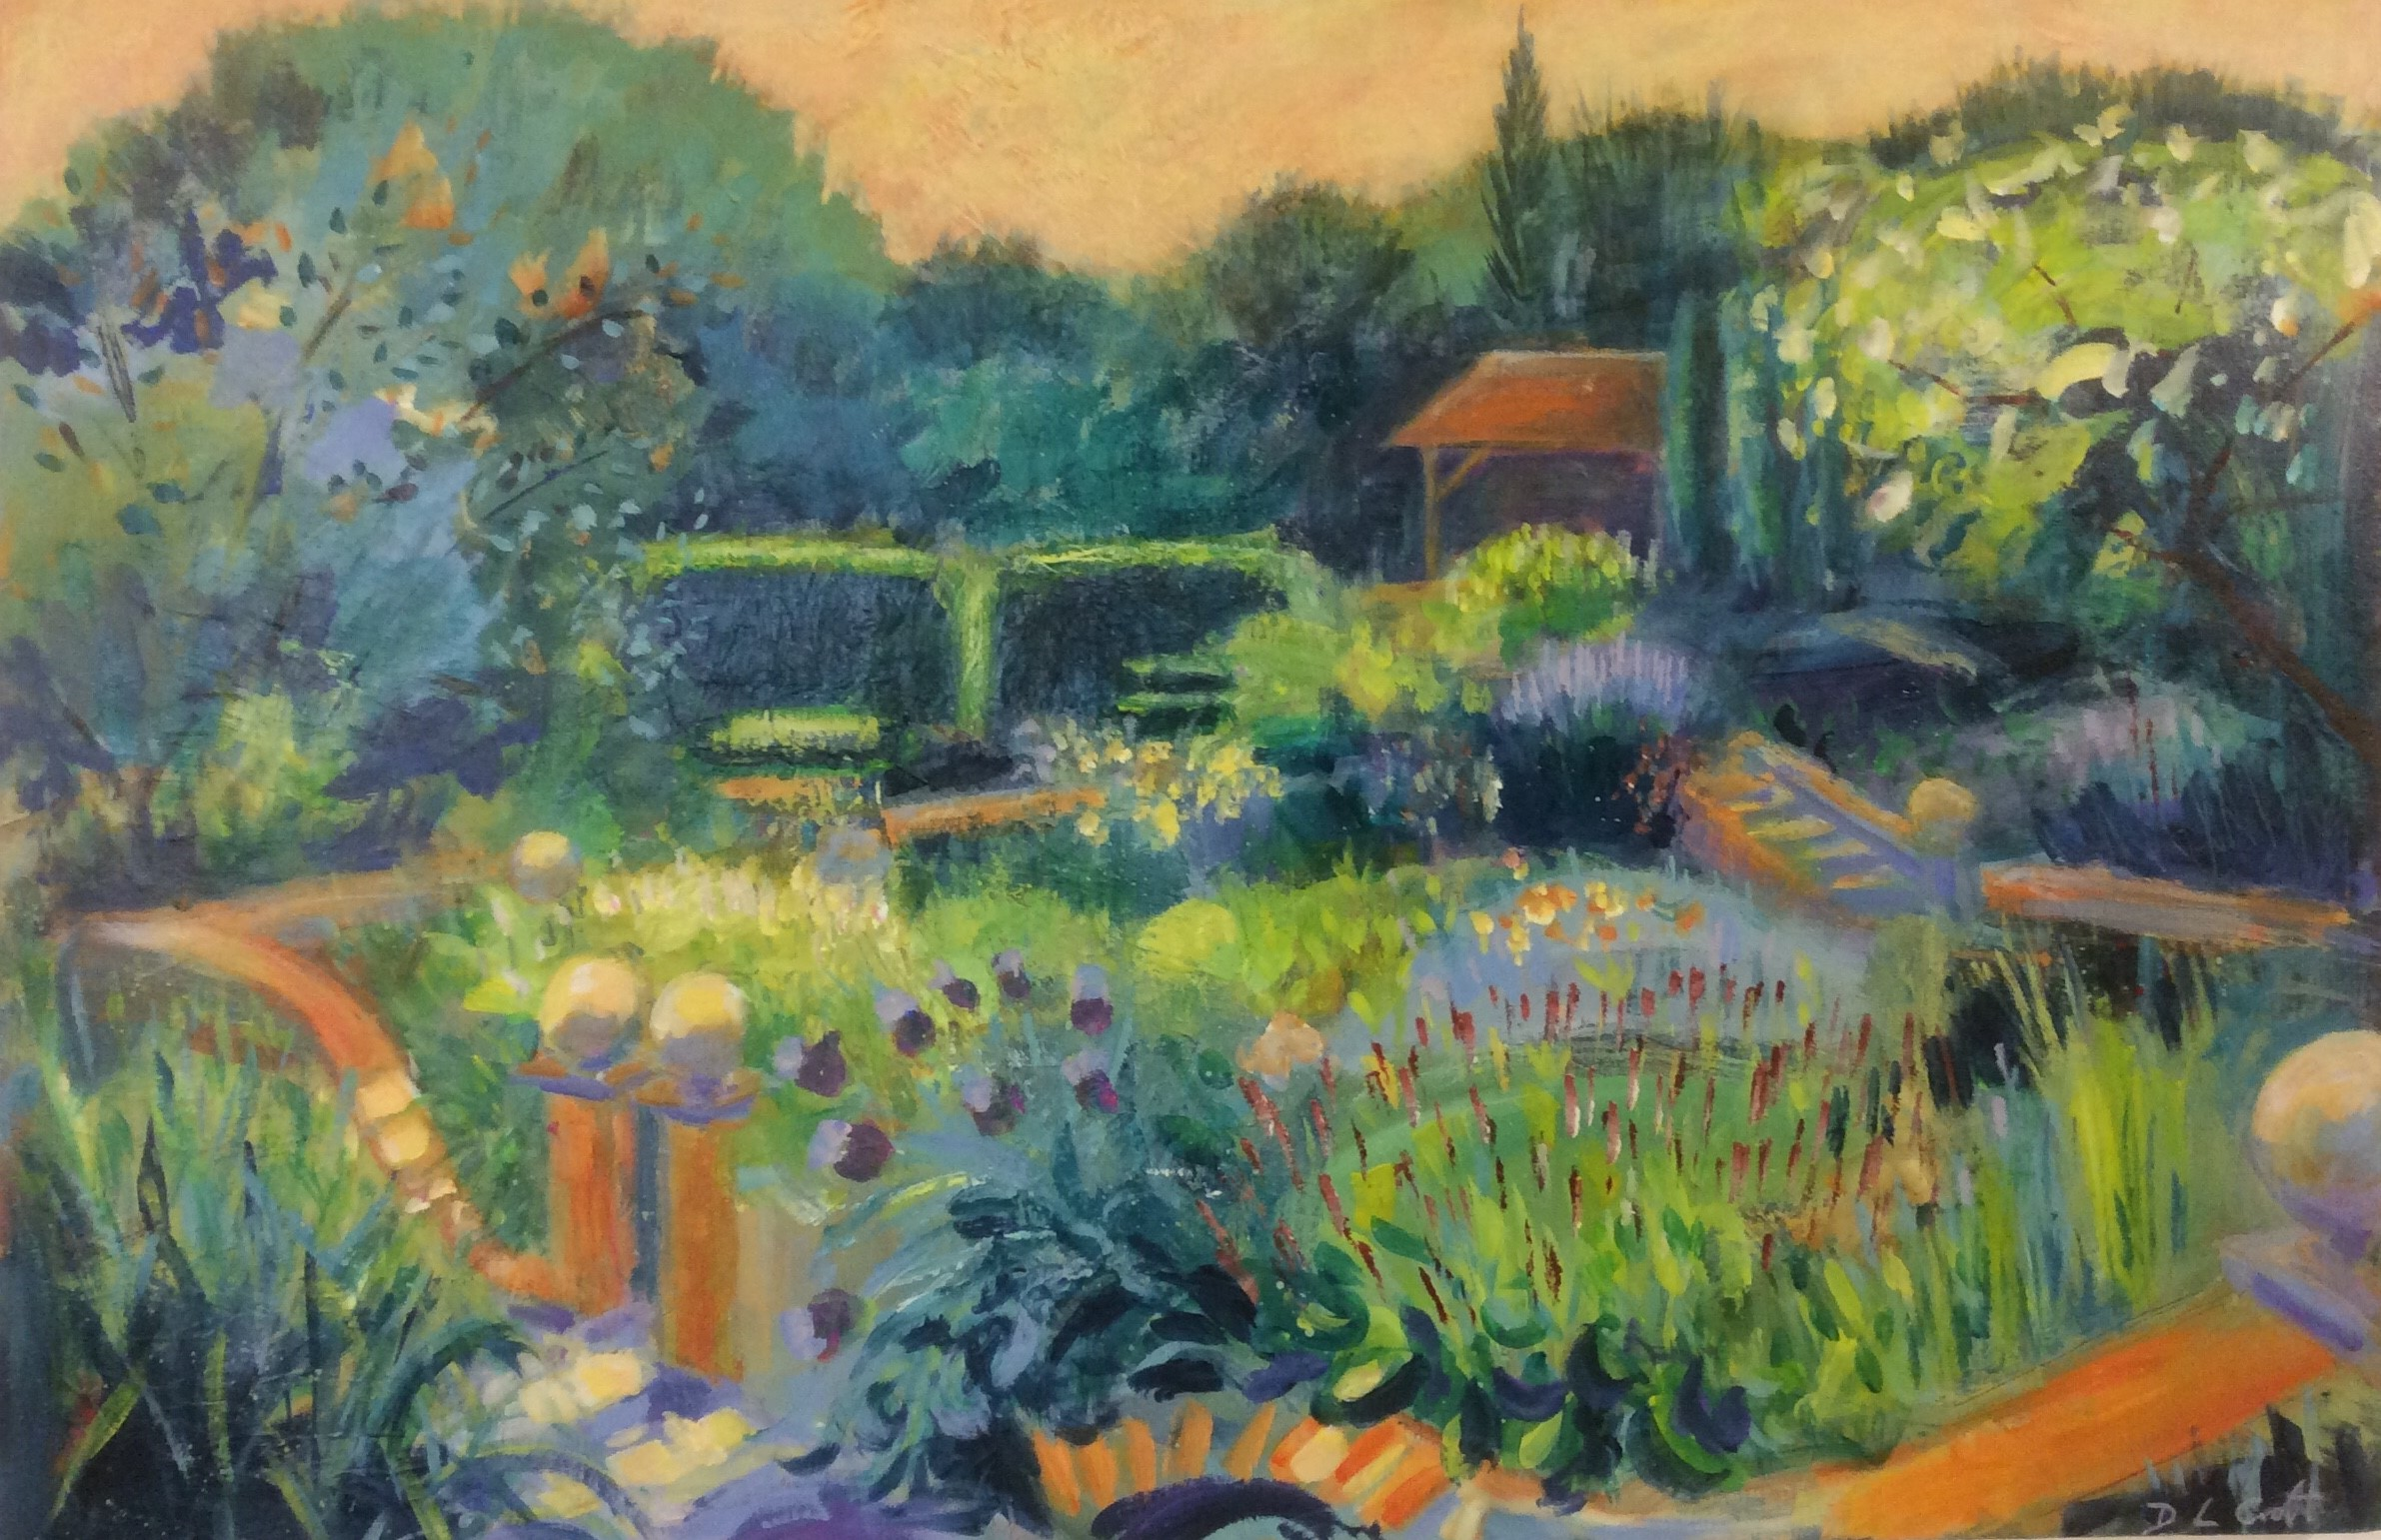 The Walled Garden - 92 x 61 cms